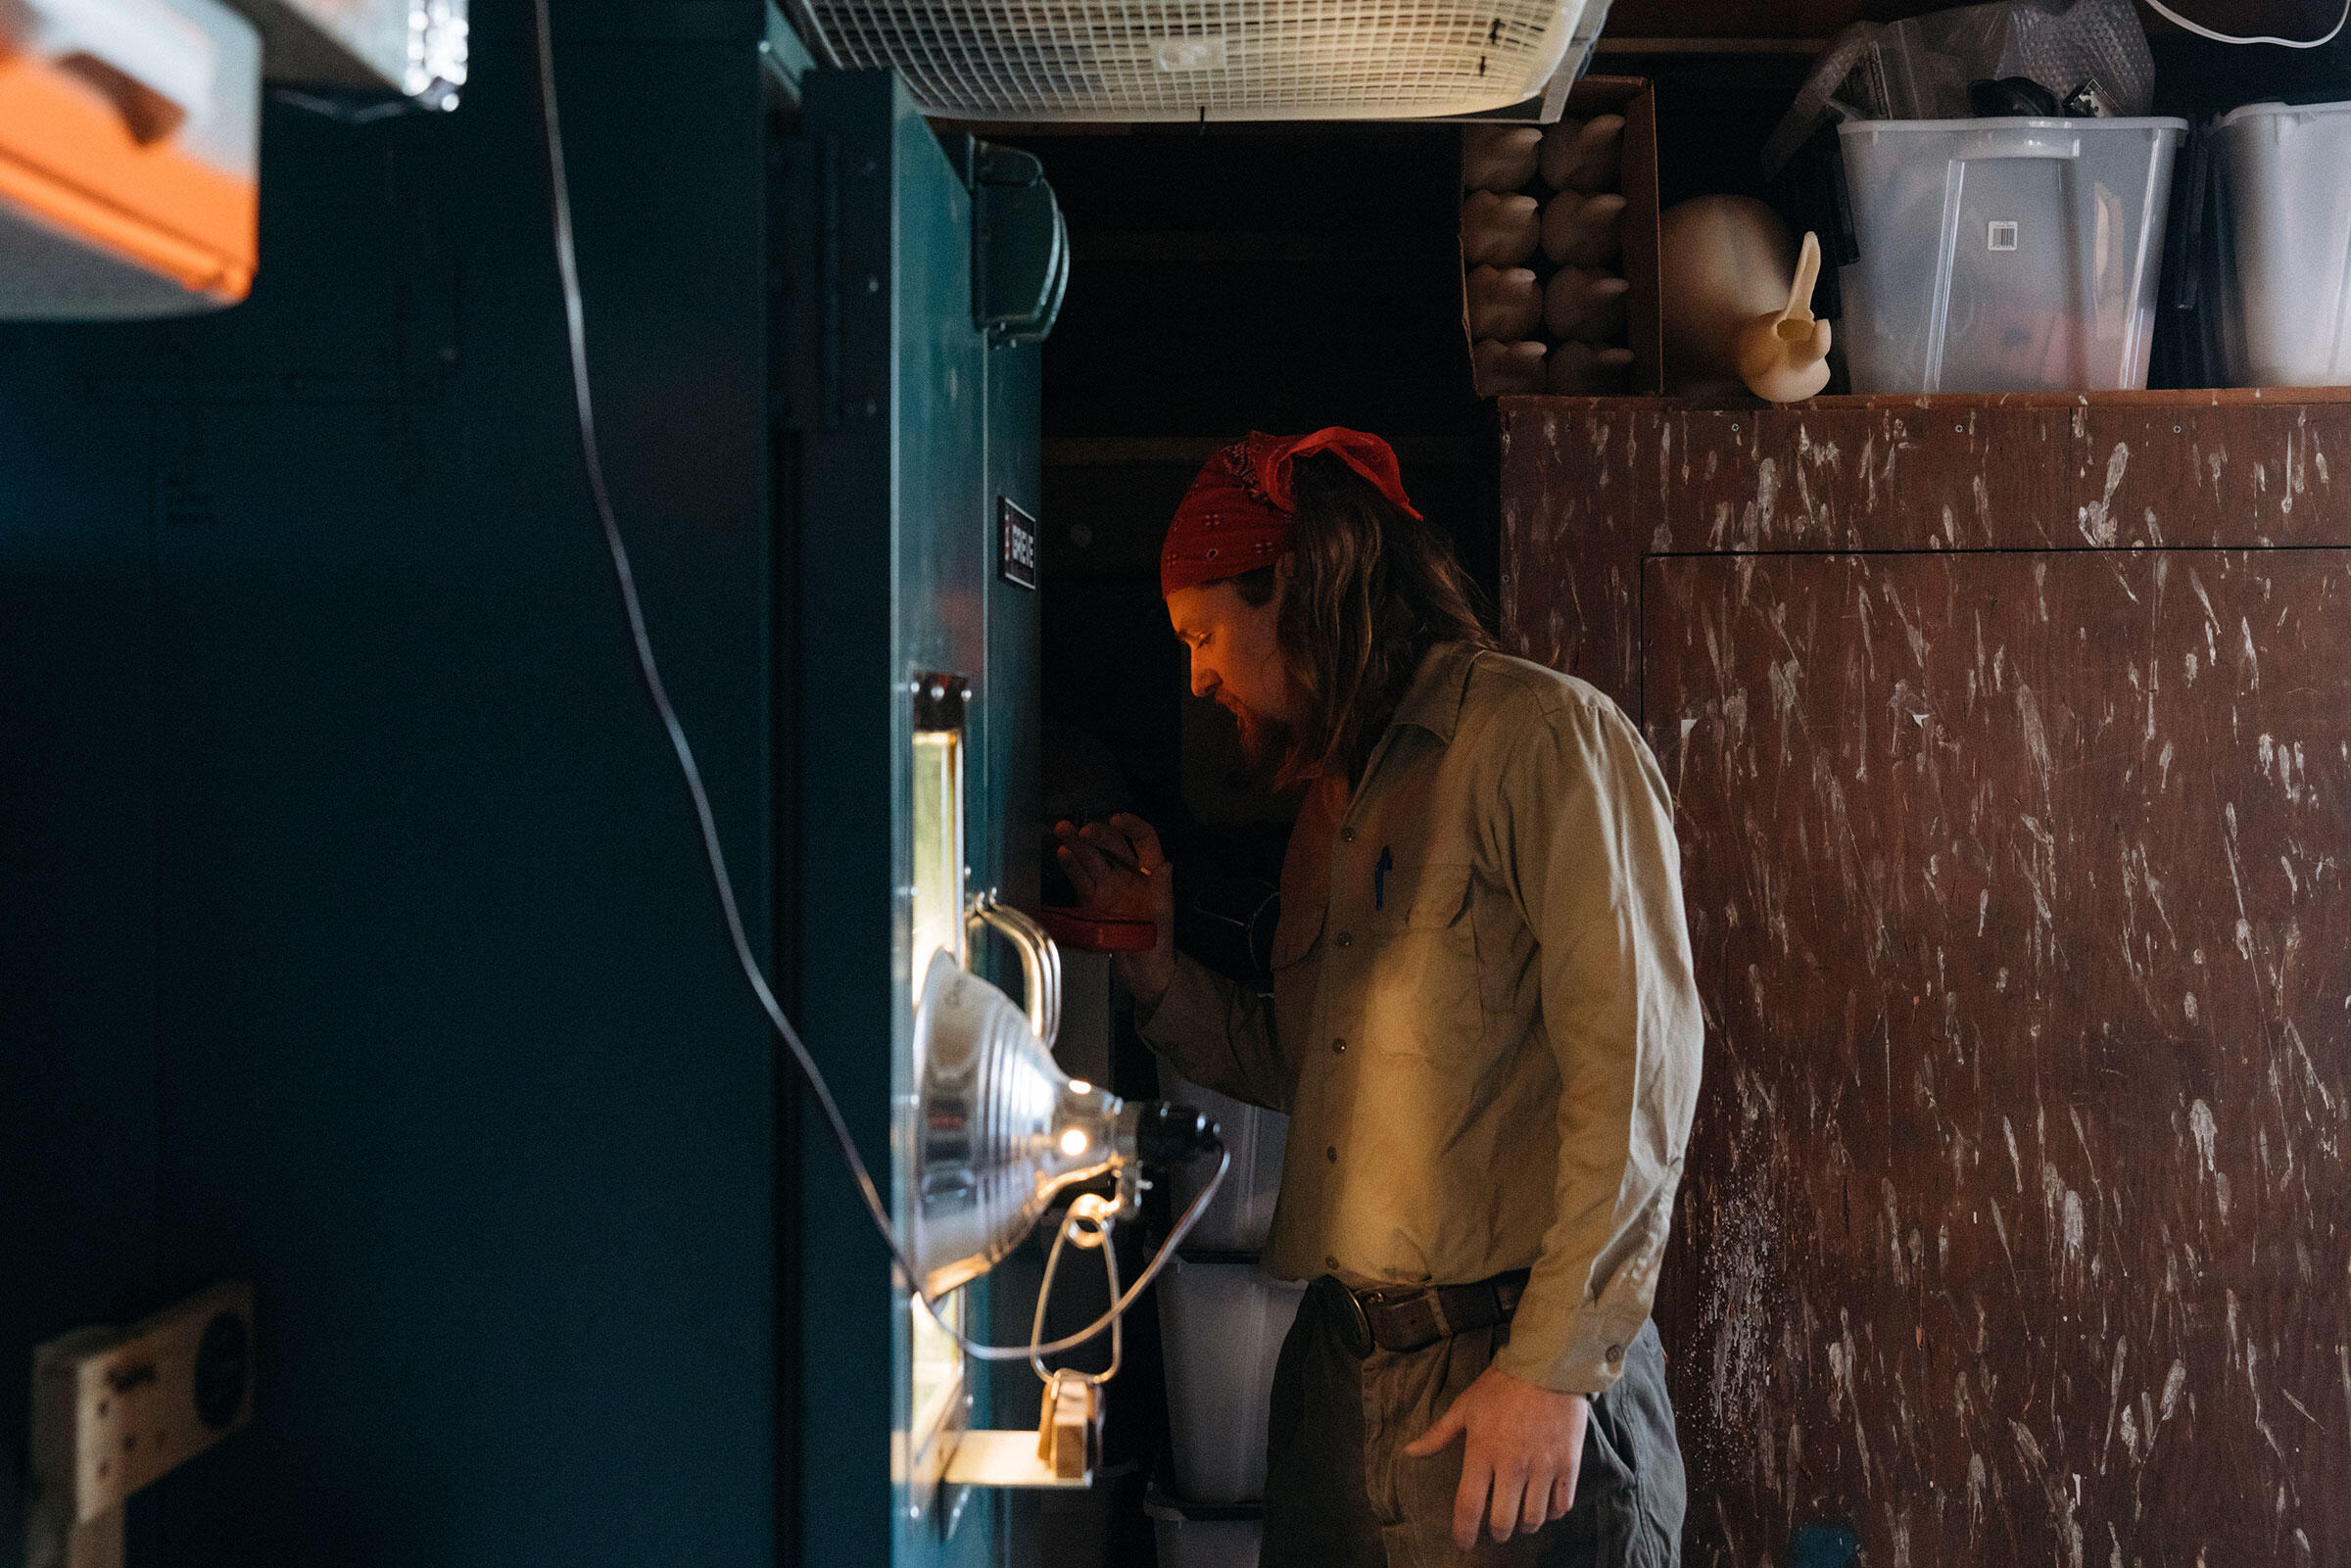 Snyder checks a batch of a decoy molds baking in the oven. Tristan Spinski